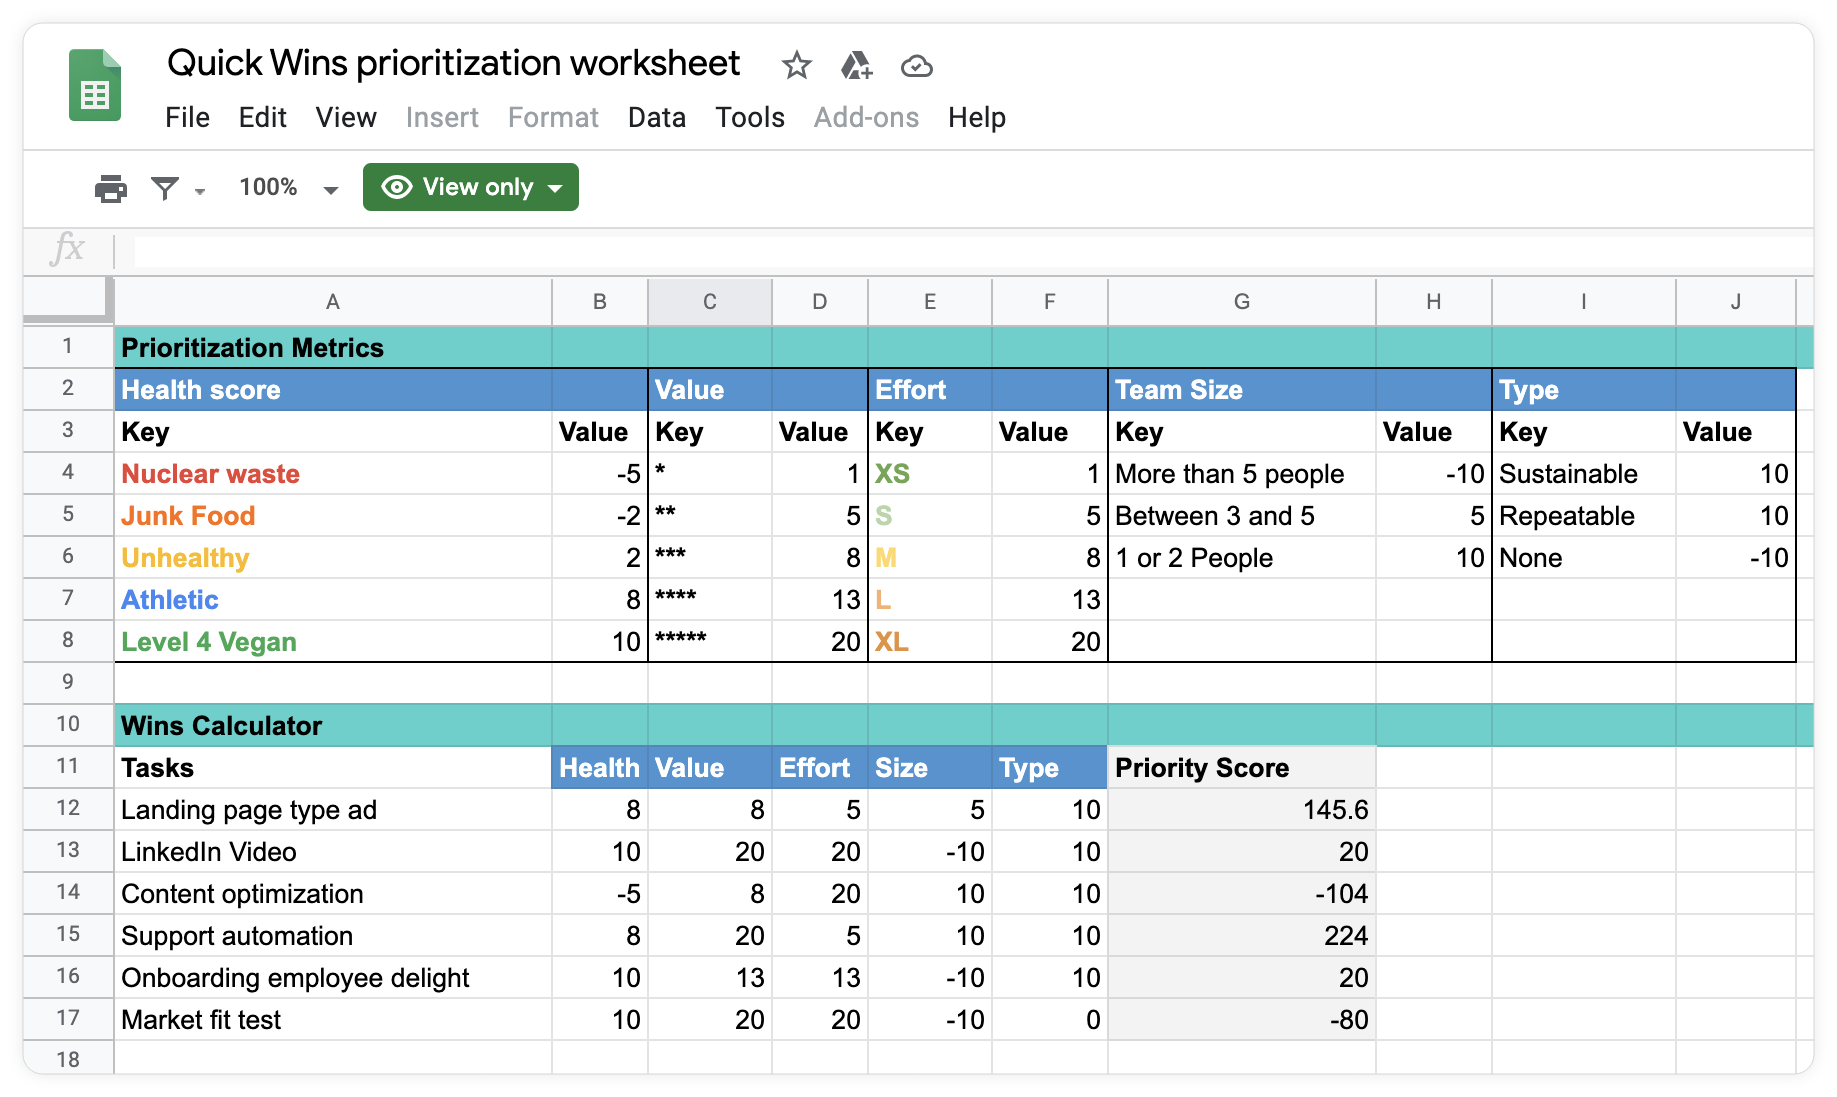 Quick wins prioritization method available as a template in Foxly.